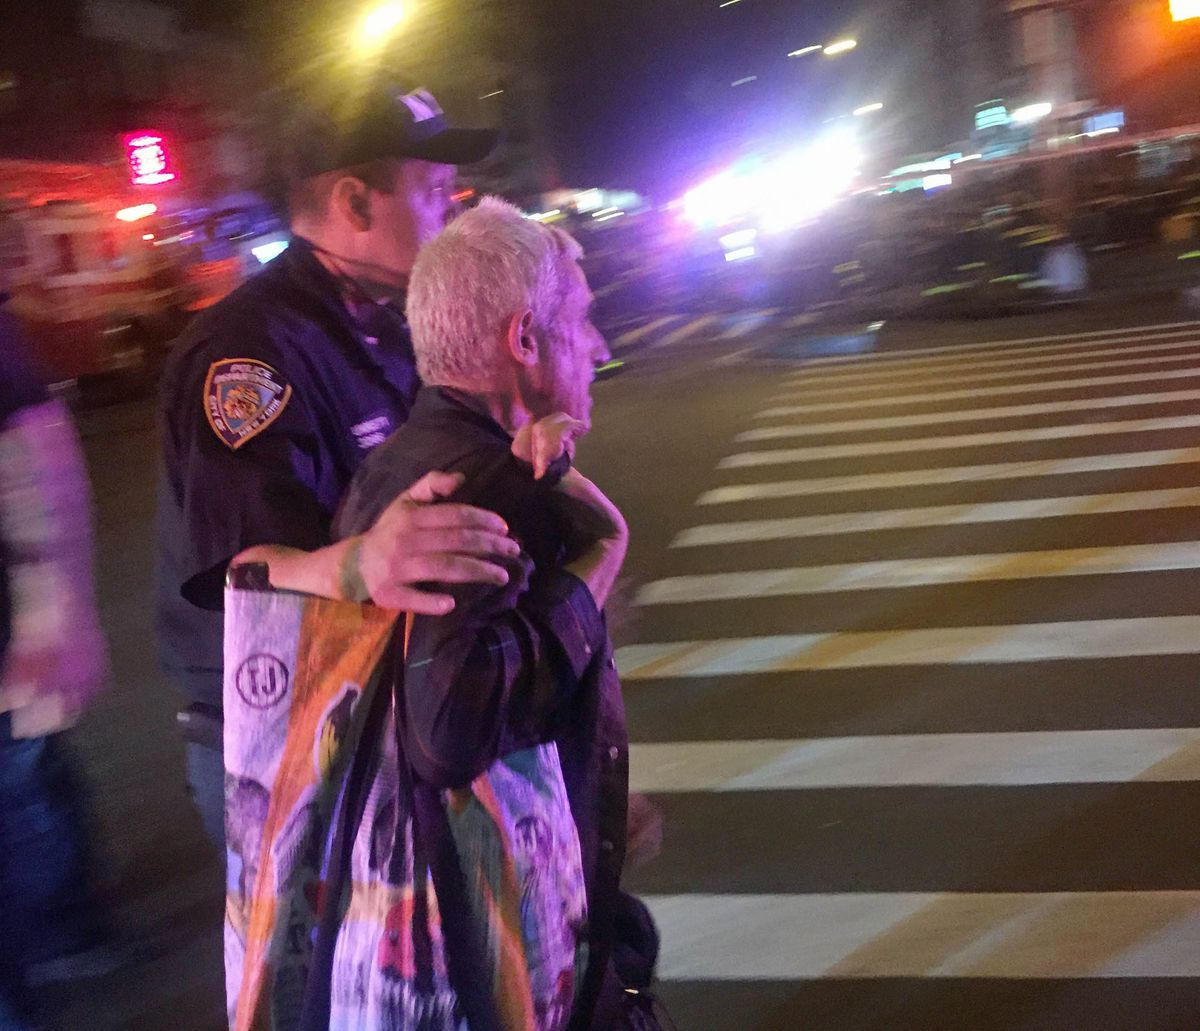 A police officer escorts an injured man from the scene of a possible explosion on West 23rd Street in New York. | AP photo